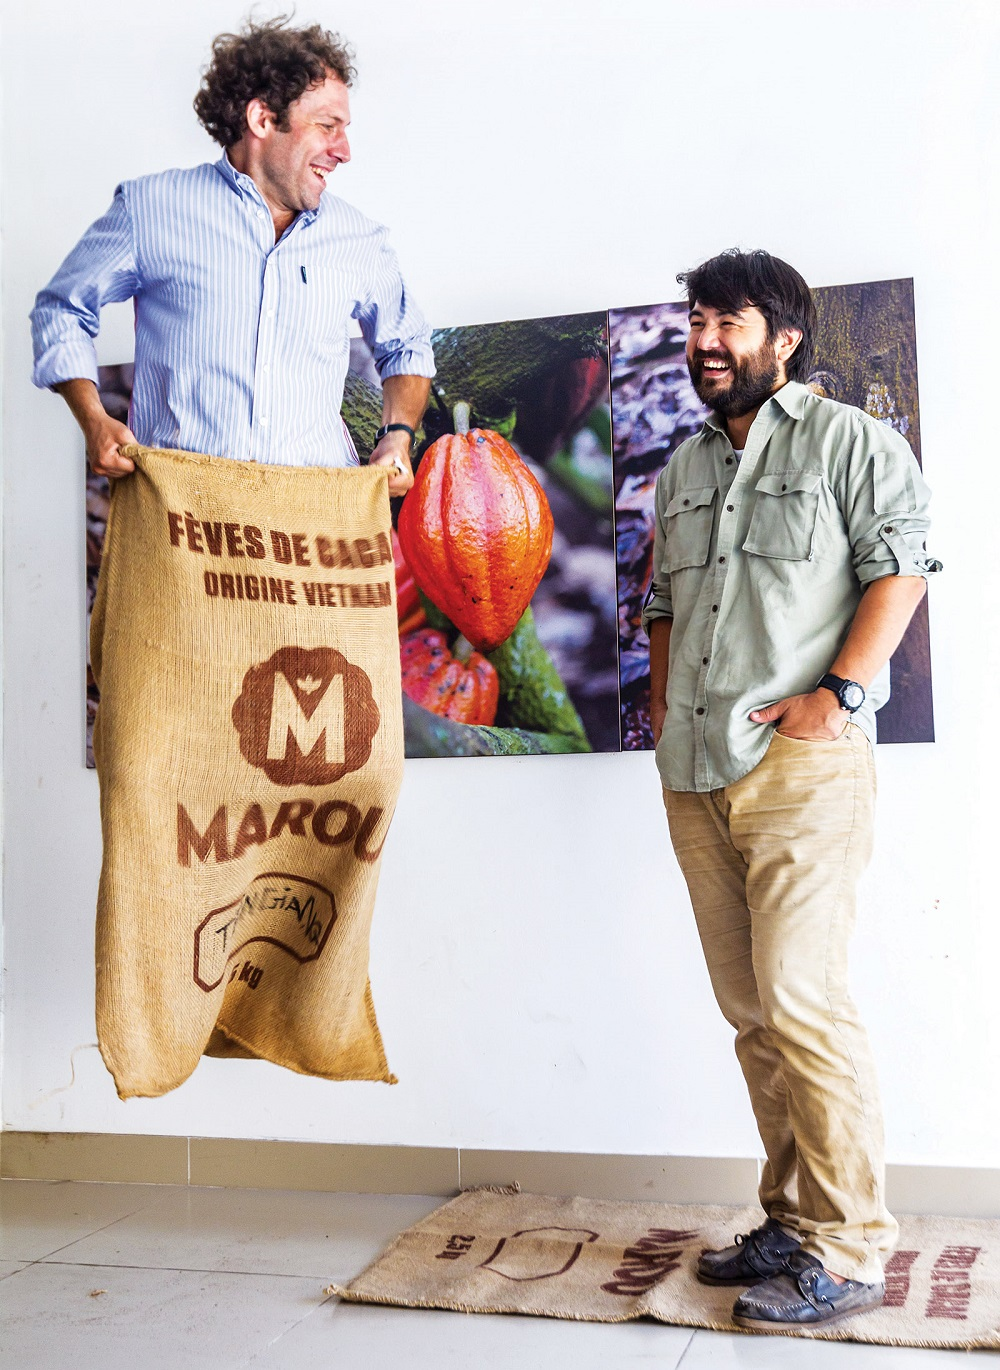 (FORBES VIETNAM )VINCENT (Blue shirt) and SAMUEL - CO-FOUNDERS and OWNERS OF MAROU CHOCOLATE COMPANY, IN HOCHIMINH CITY, VIETNAM, JUNE 26th,2013. (Le Quang Nhat / Forbes Vietnam)